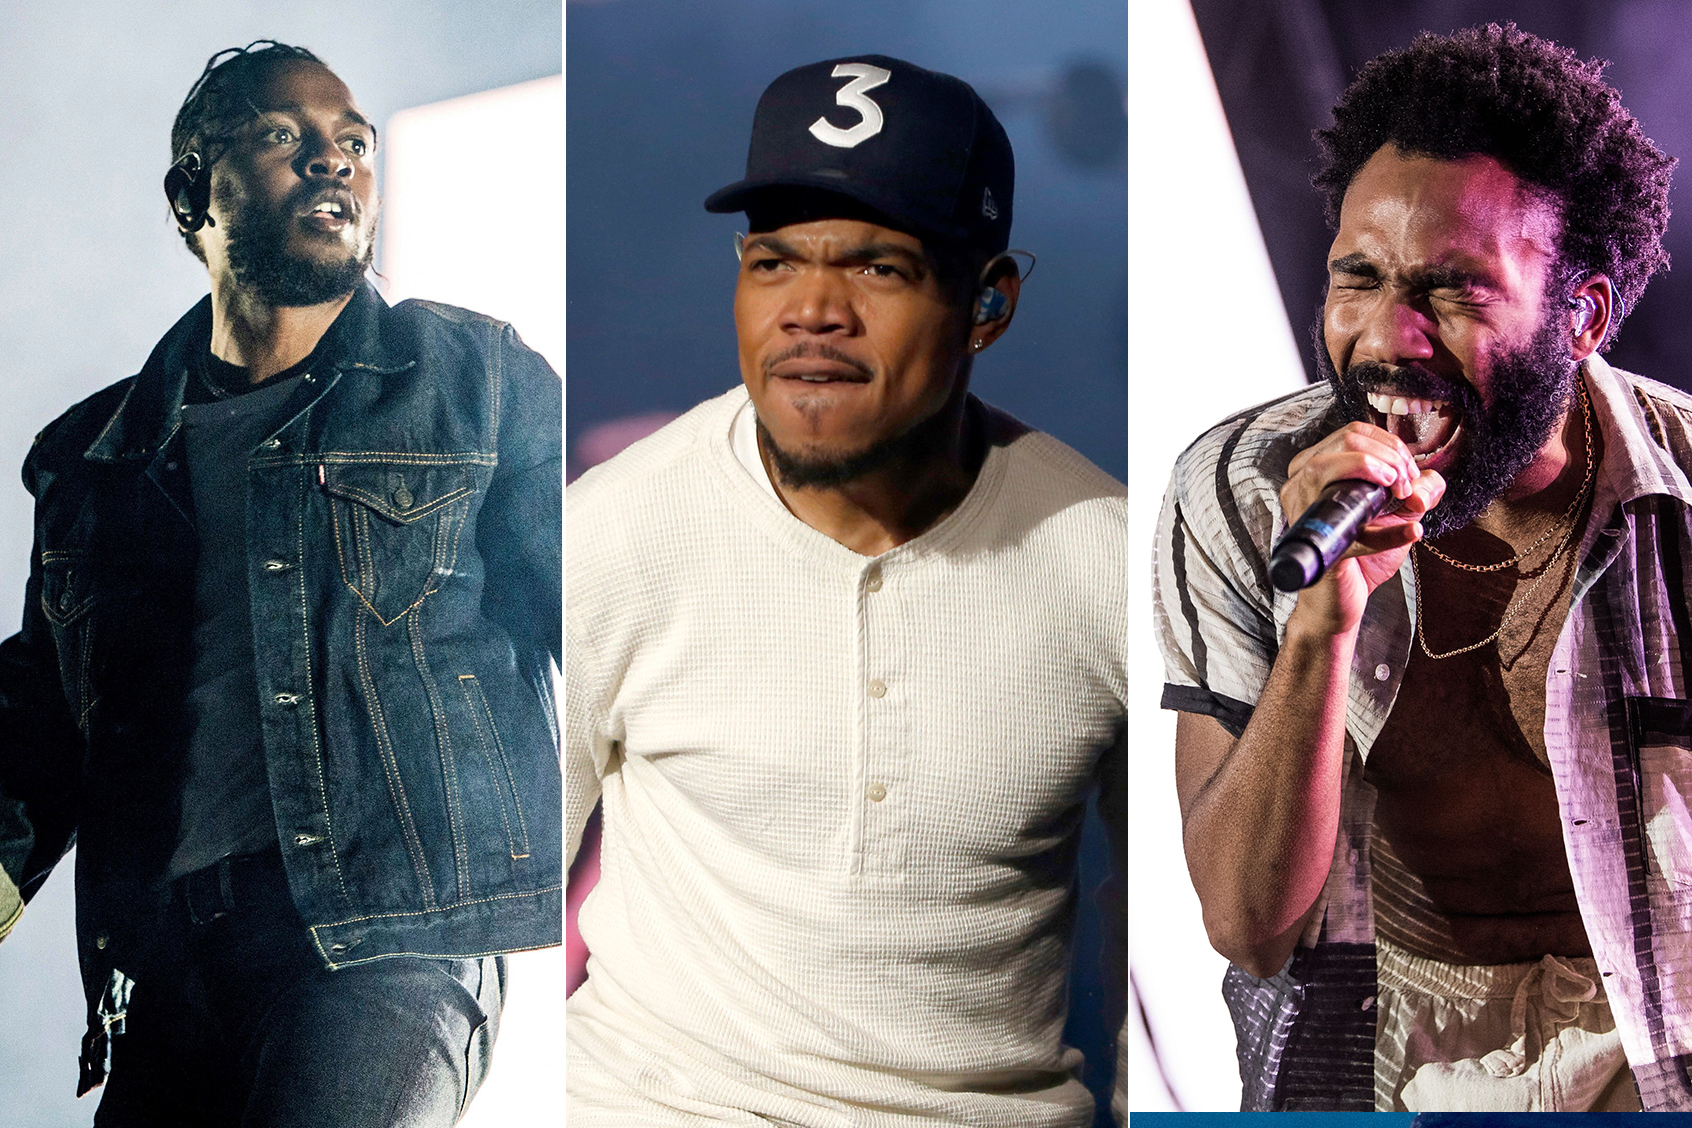 The Most Anticipated Hip-Hop Albums of 2019 - Rolling Stone